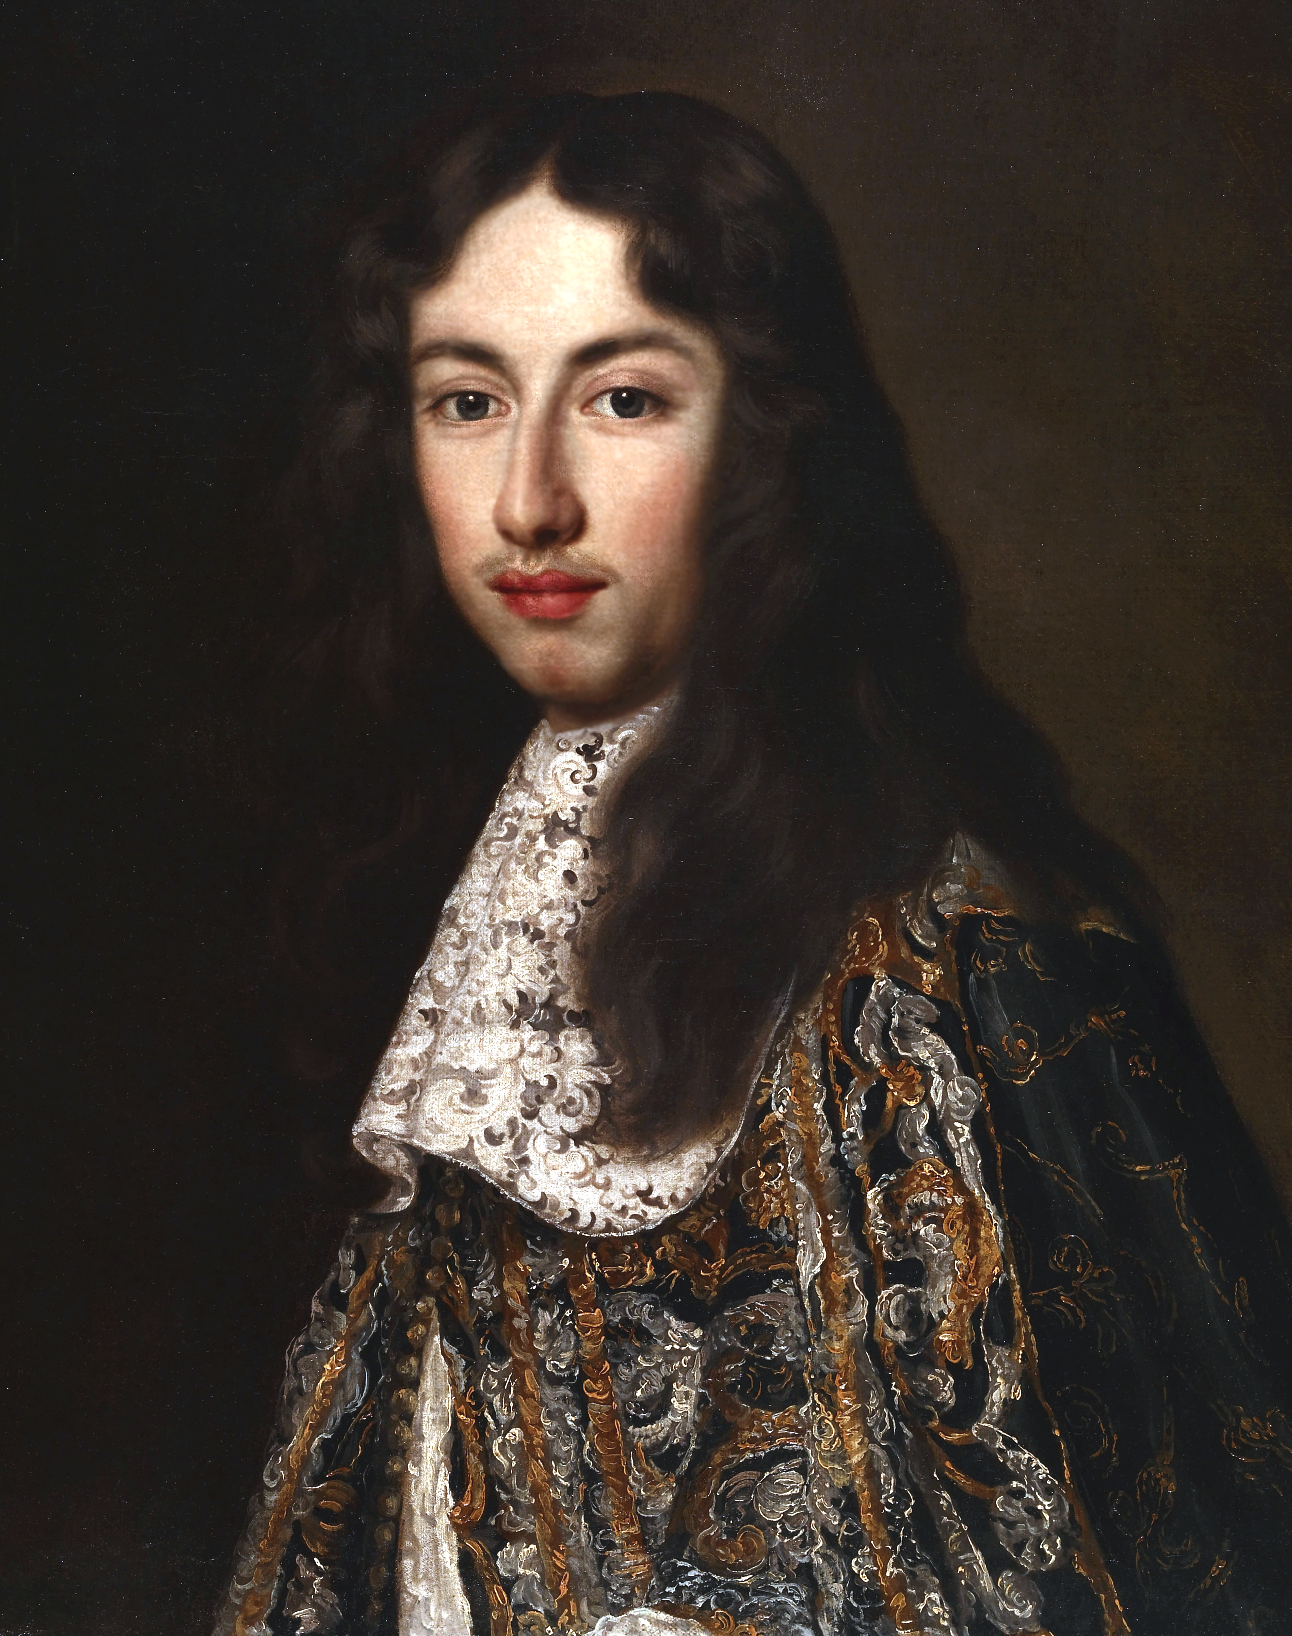 Livio Odescalchi in a portrait by Jacob Ferdinand Voet